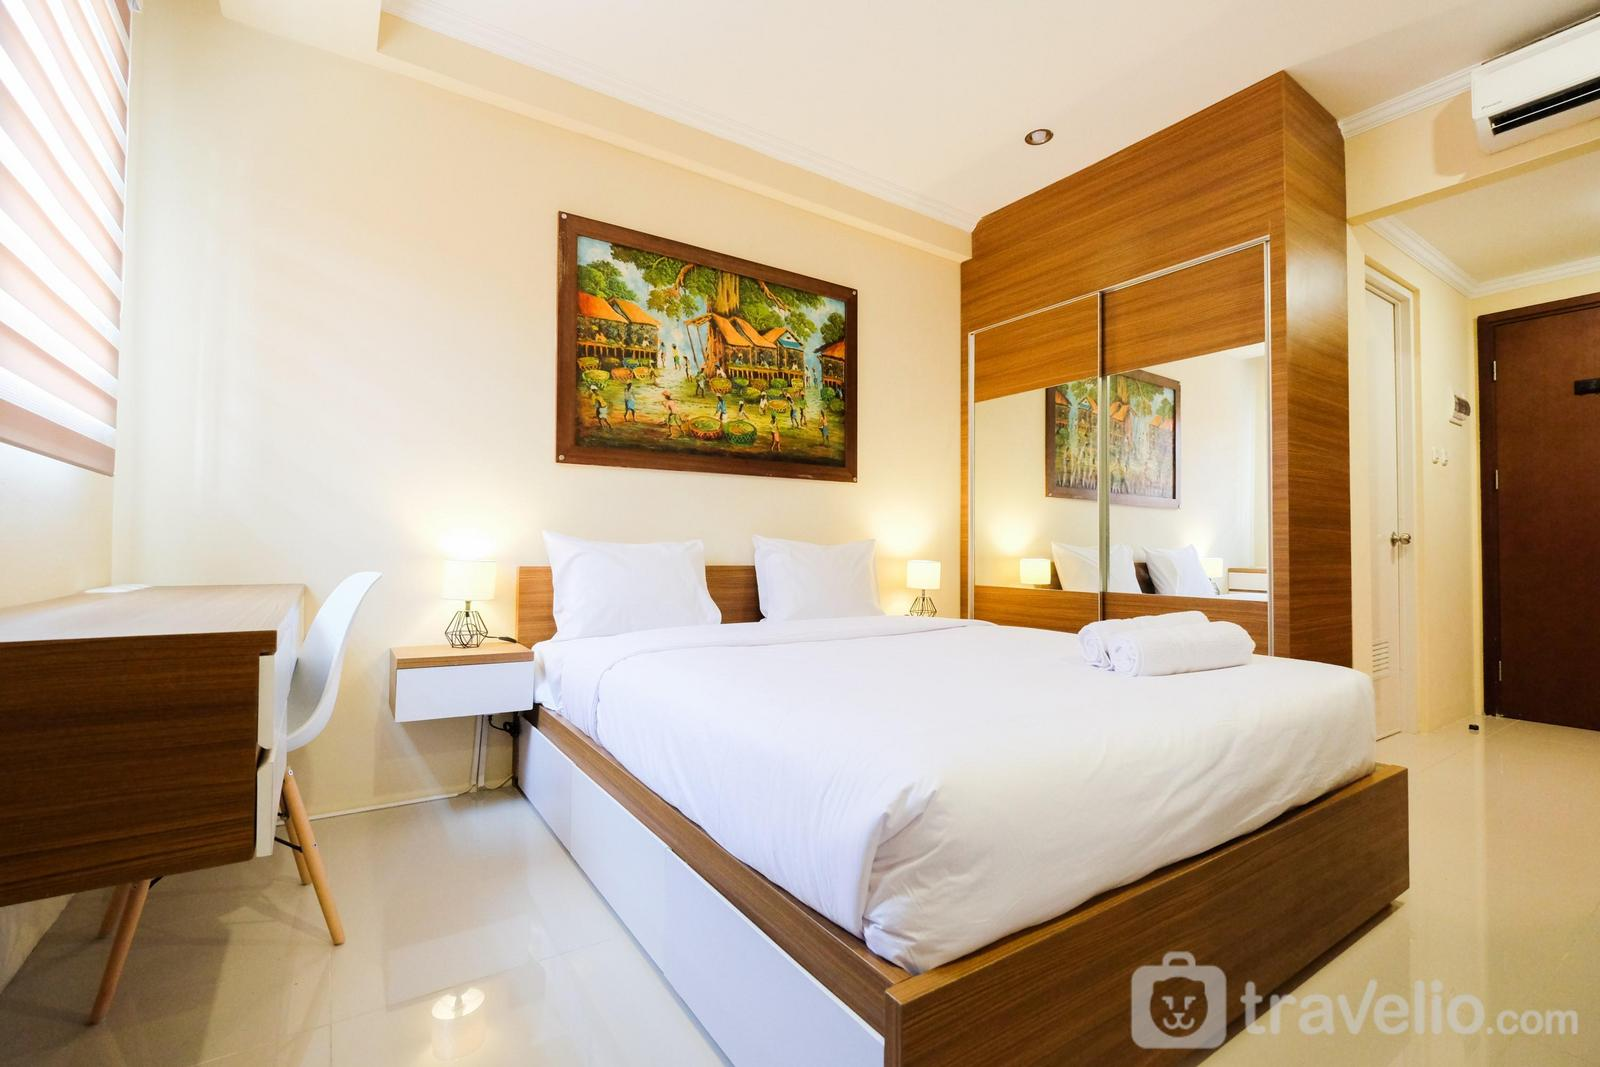 Signature Park Grande M.T Haryono - Private Studio Room Signature Park Grande Apartment By Travelio